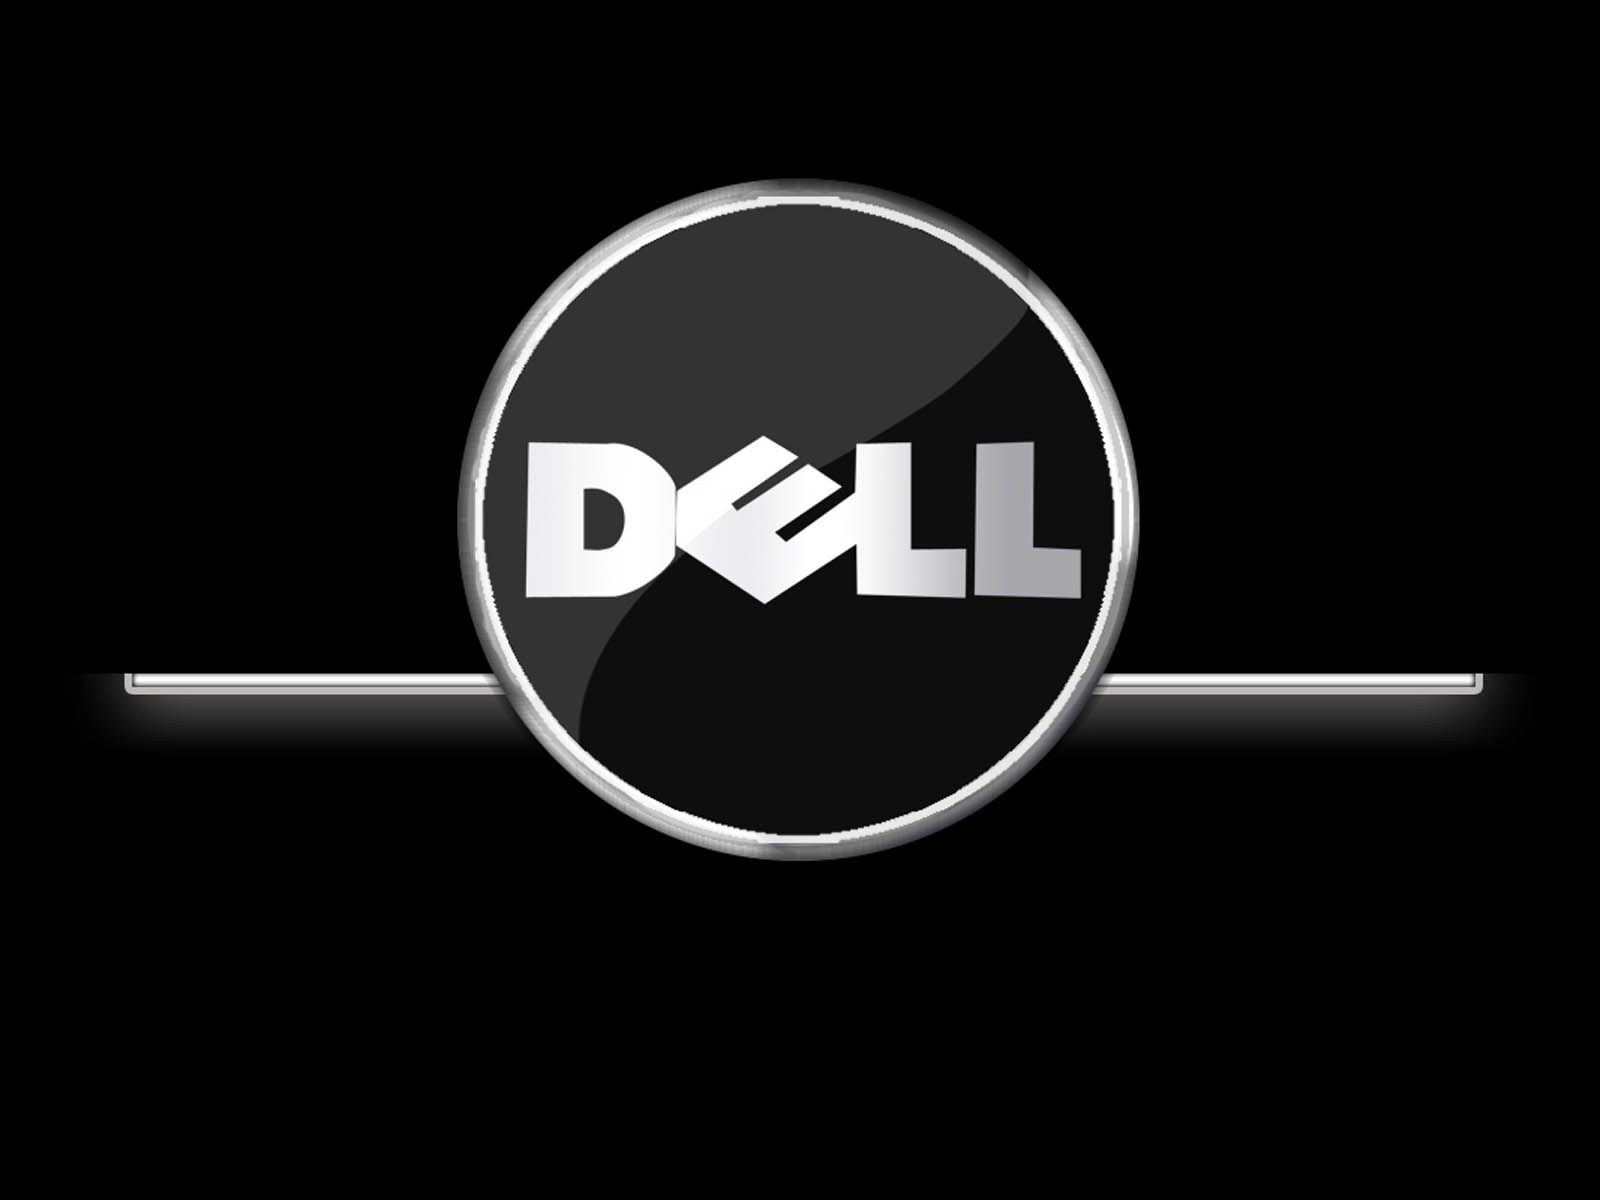 Dell Pc Wallpapers Top Free Dell Pc Backgrounds Wallpaperaccess